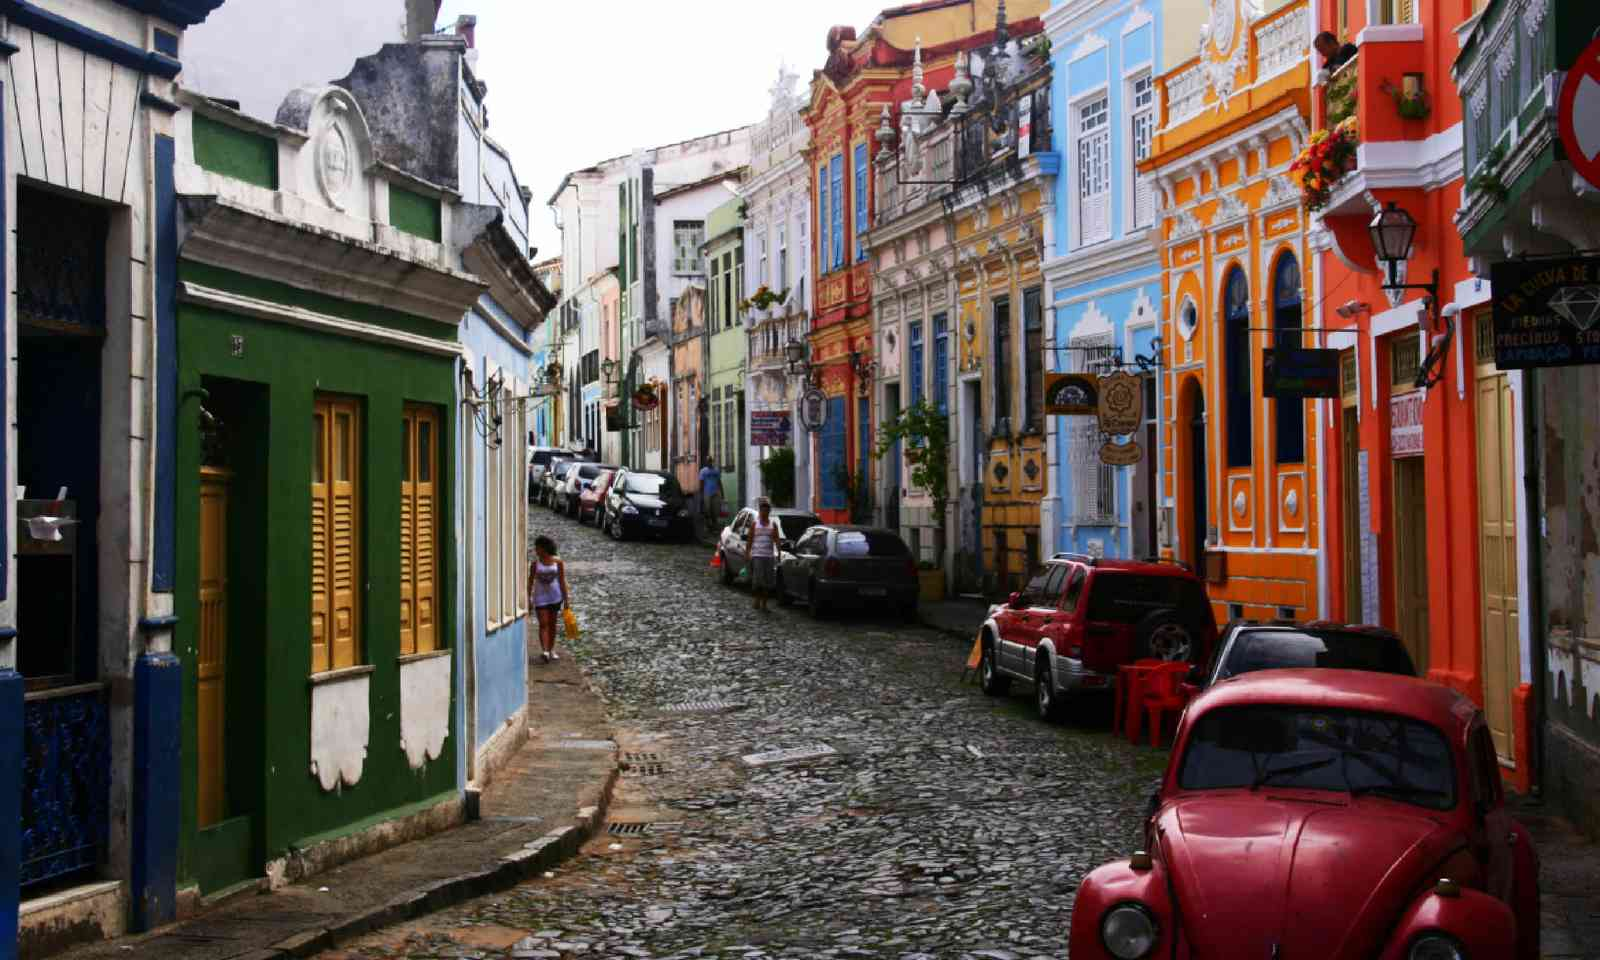 Colourful small street (Dreamstime)